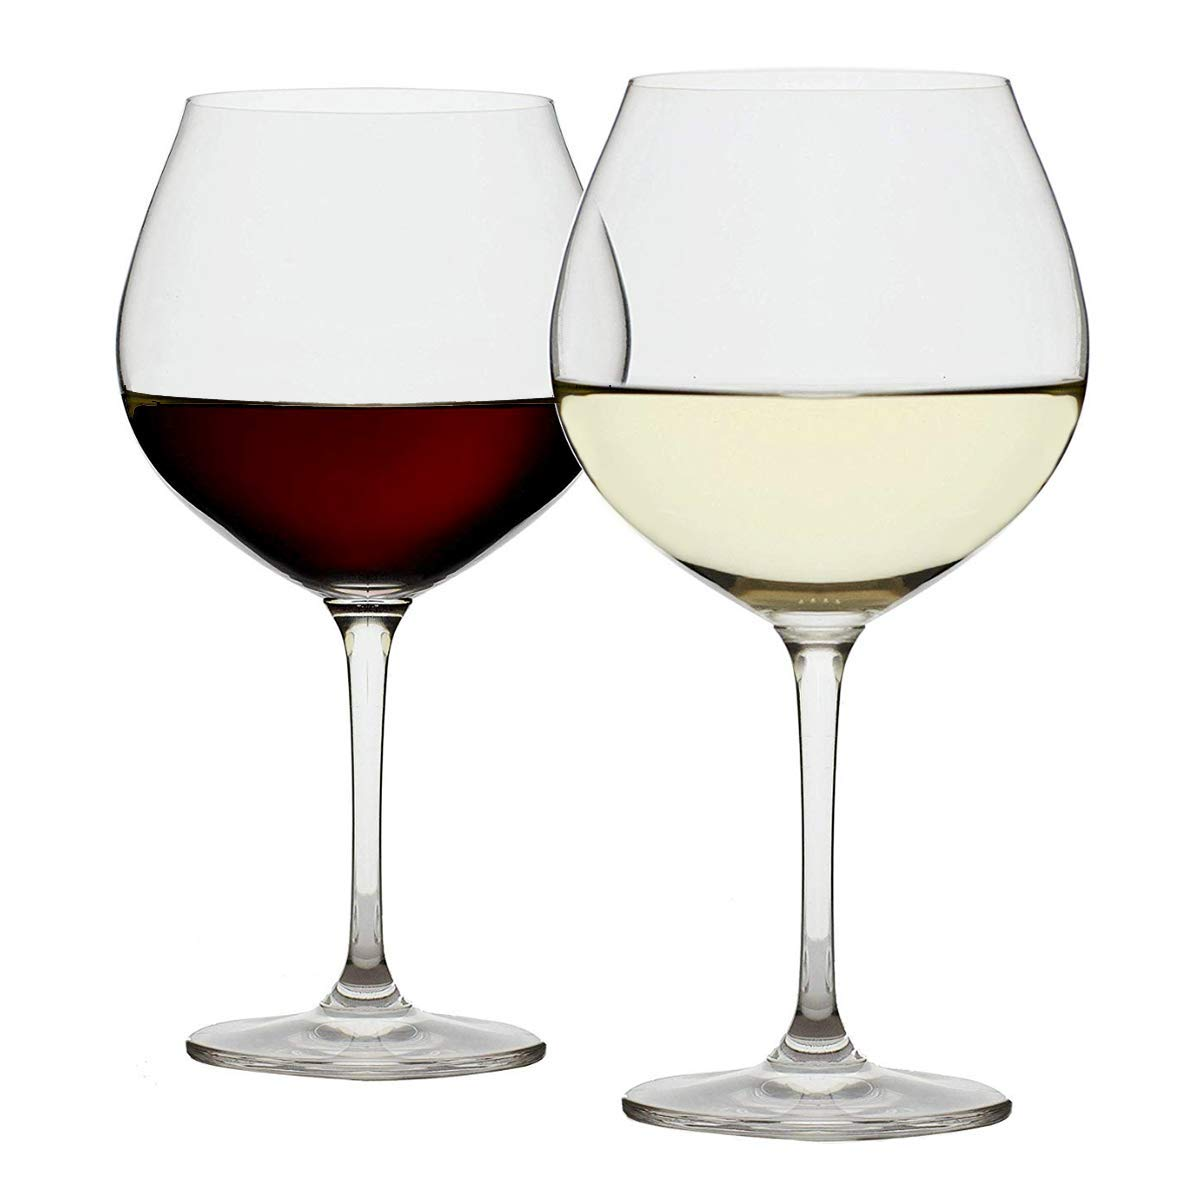 Extra Large Red Wine Glasses - Set of 2 Big 25oz Goblets | Long Stem | Lead-free Crystal | Powerful Valentines Day Gift - Olivia Pope Style | Wide Bowl for Burgundy Pinot Noir Cabernet Merlot Malbec